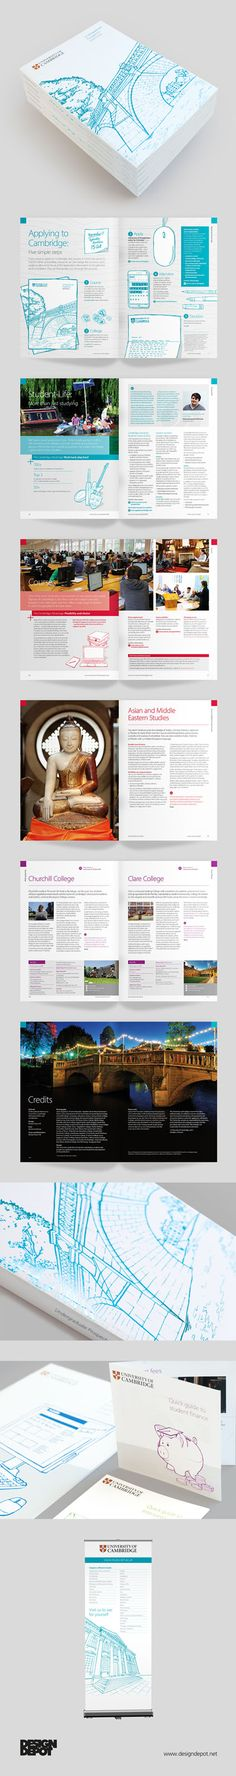 Cambridge University prospectus, artwork, learning, university, identity, branding, design depot, prospectus, education, graphics, Northamptonshire #DesignDepot